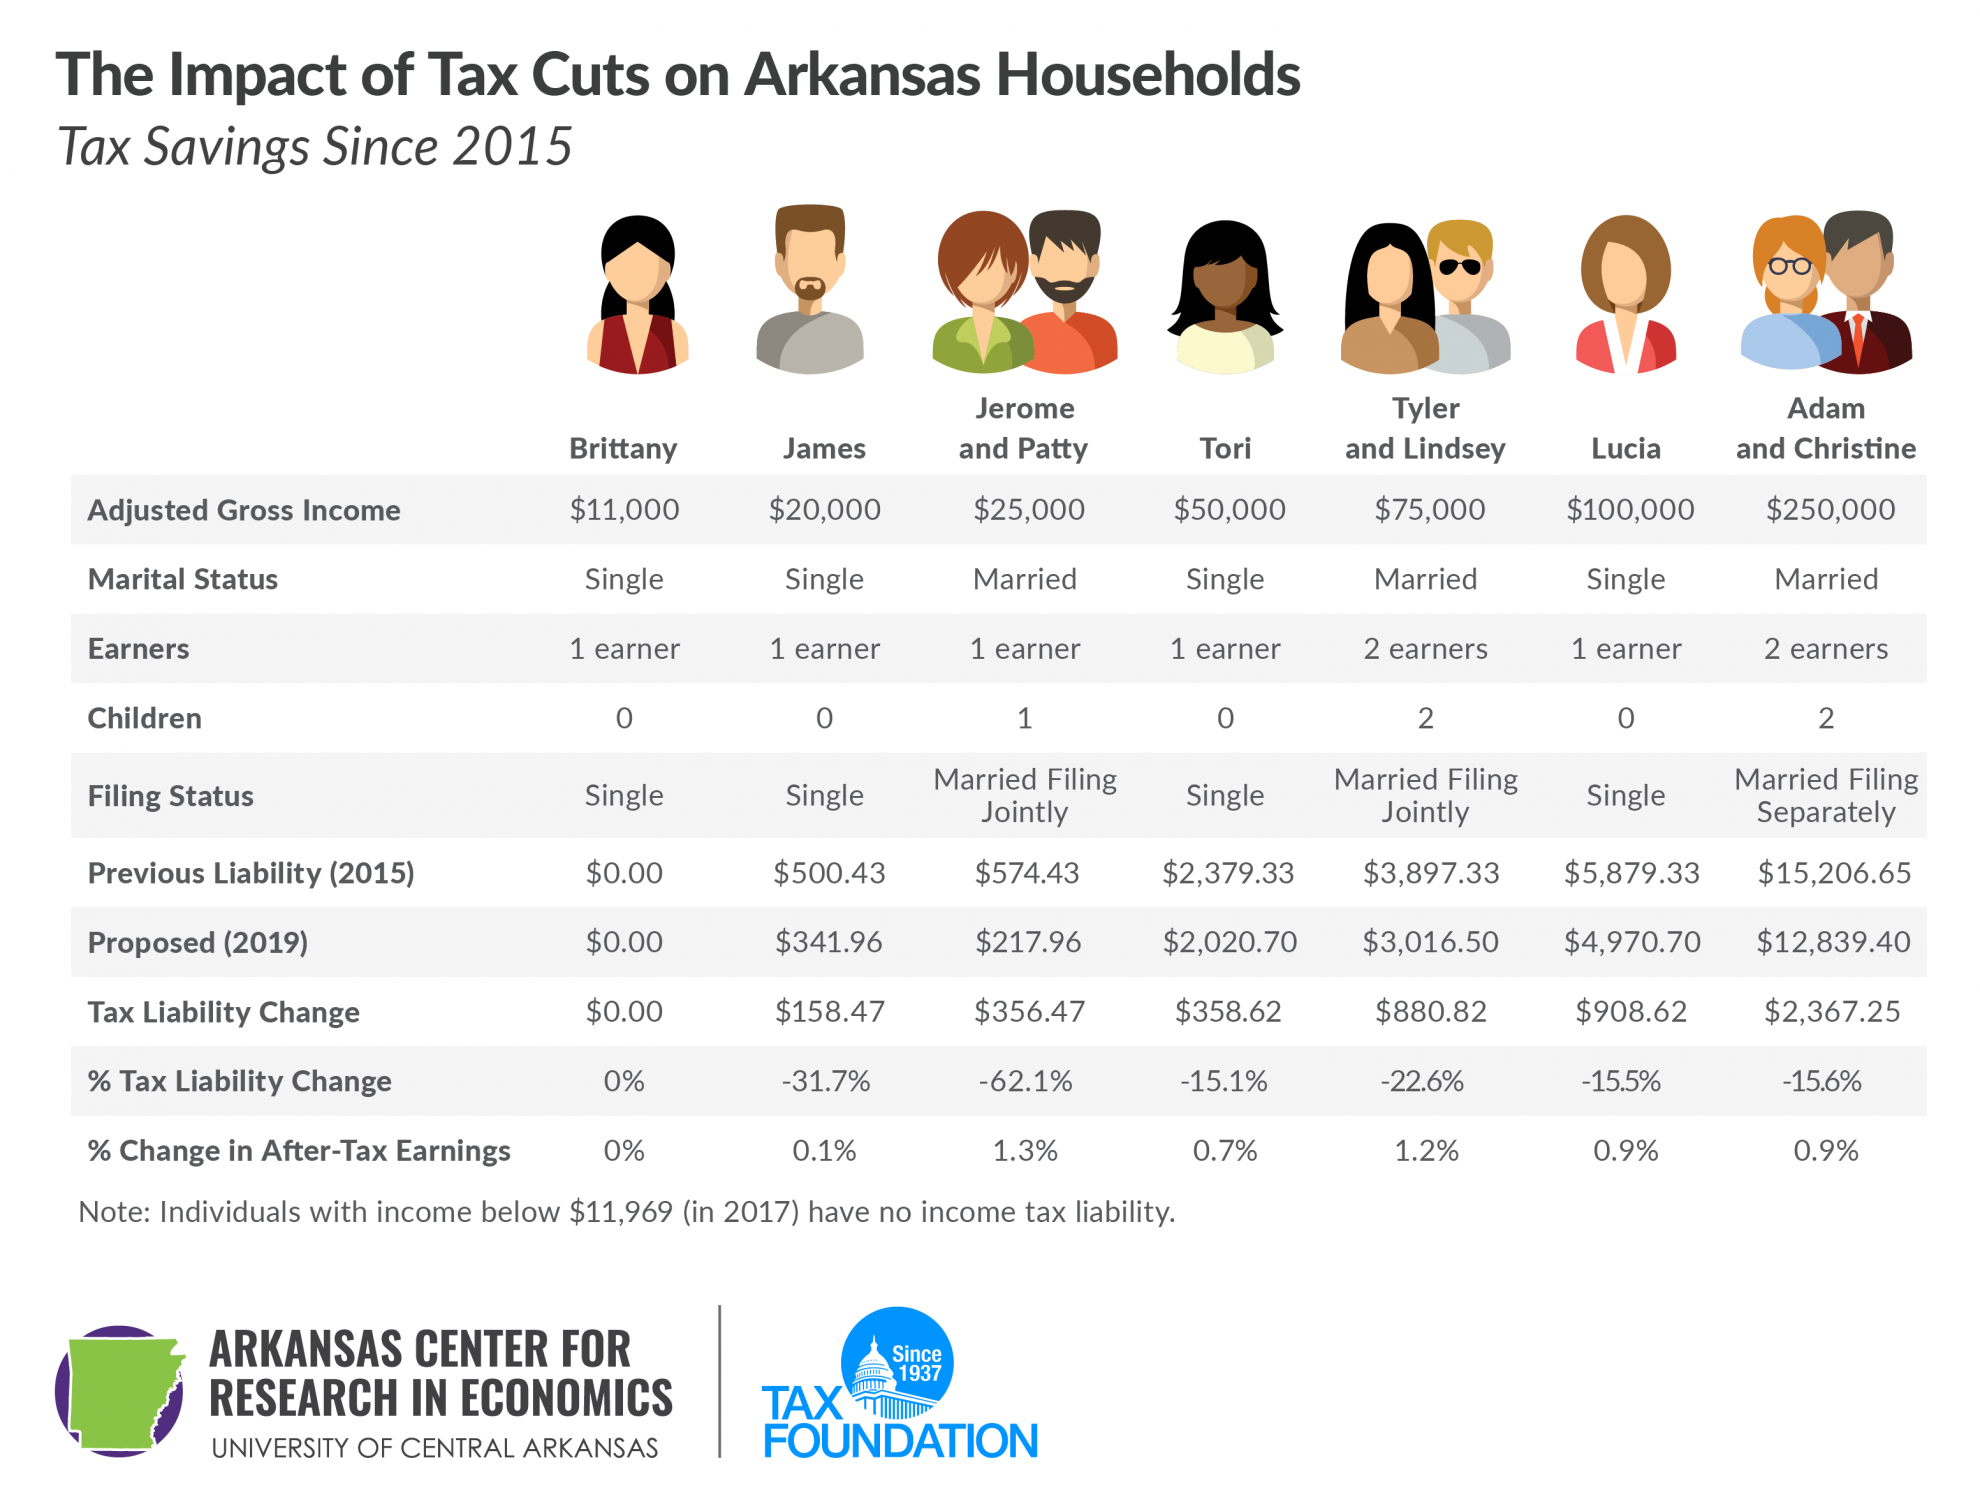 Impact of Tax Cuts on Arkansas households, tax savings since 2015. Arkansas tax cuts